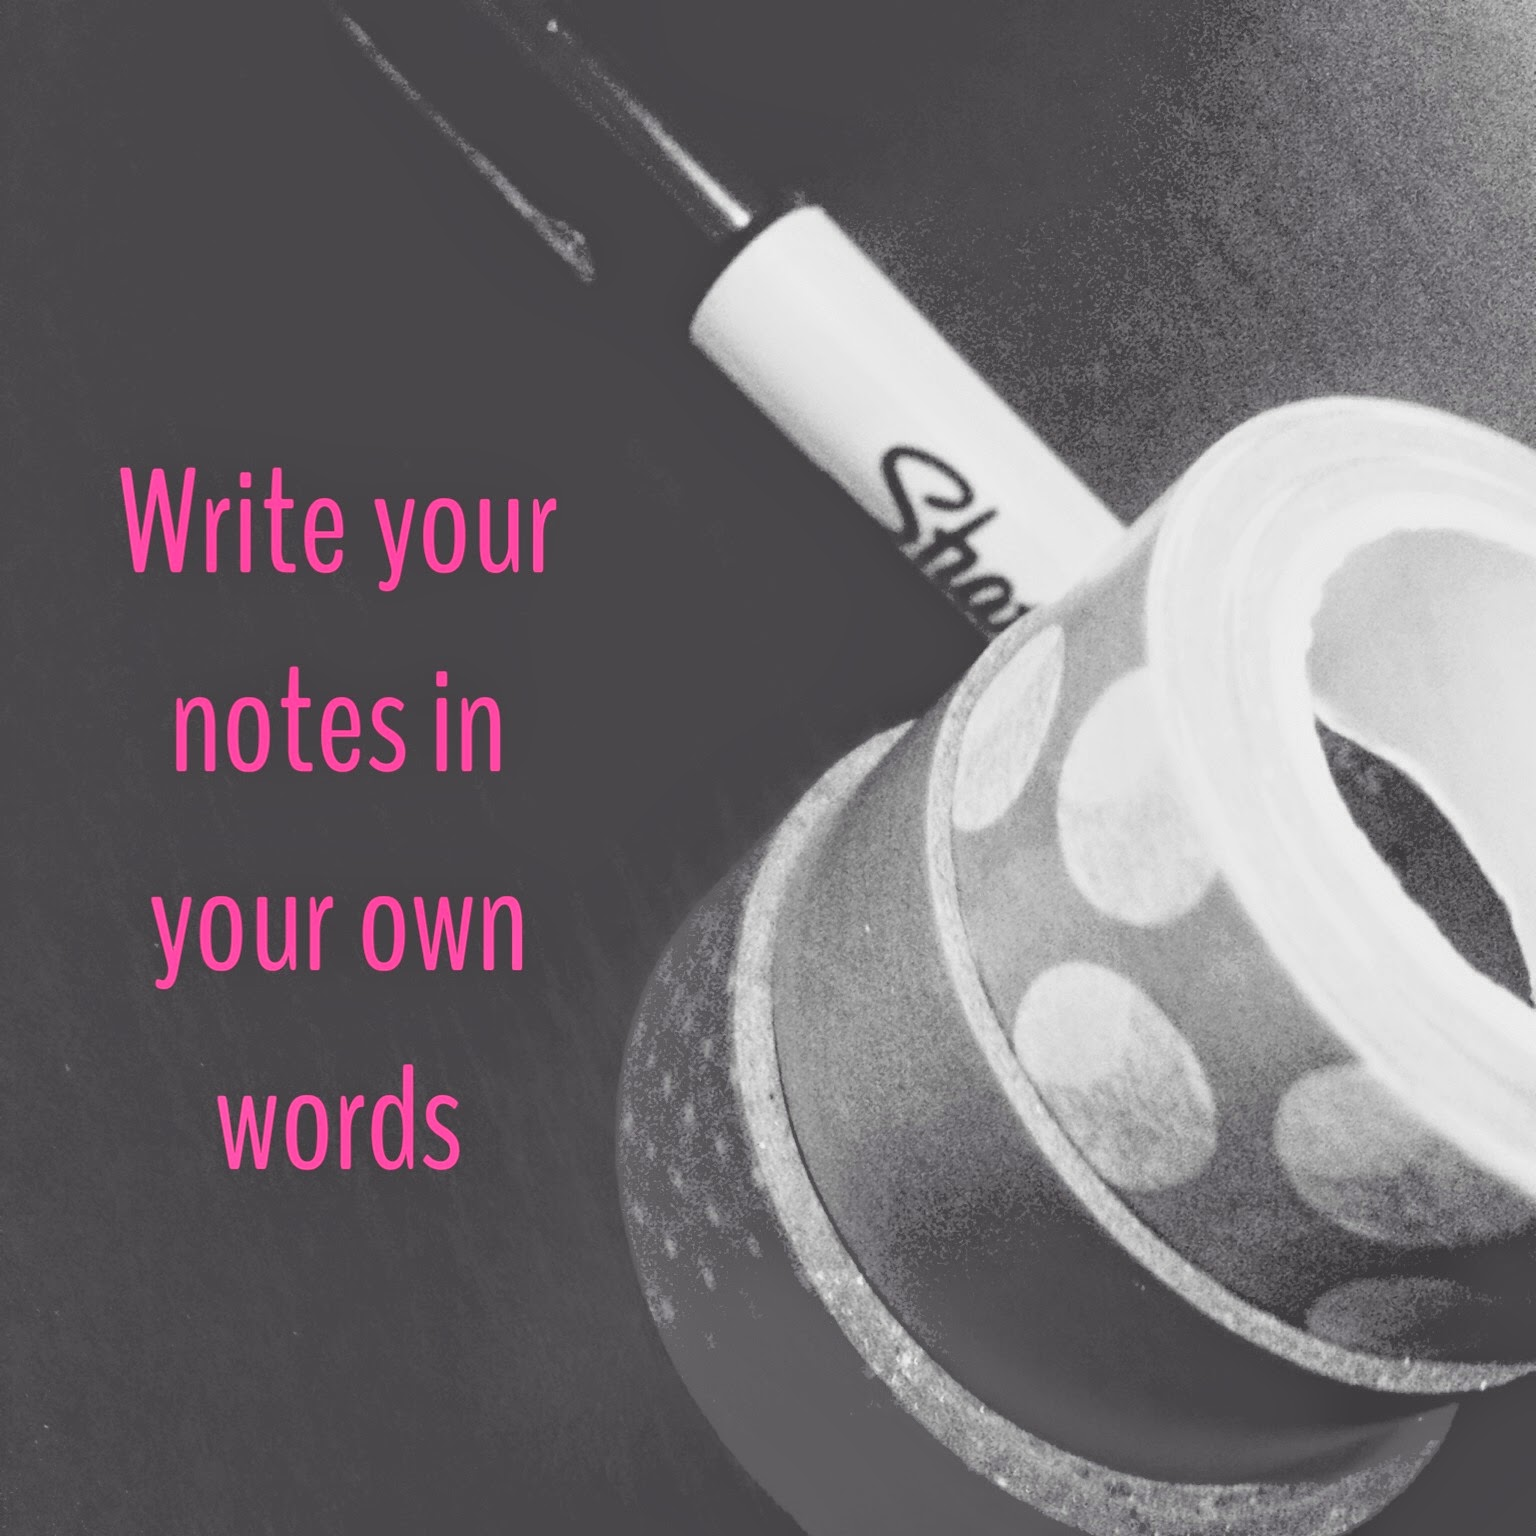 how to write in your own words